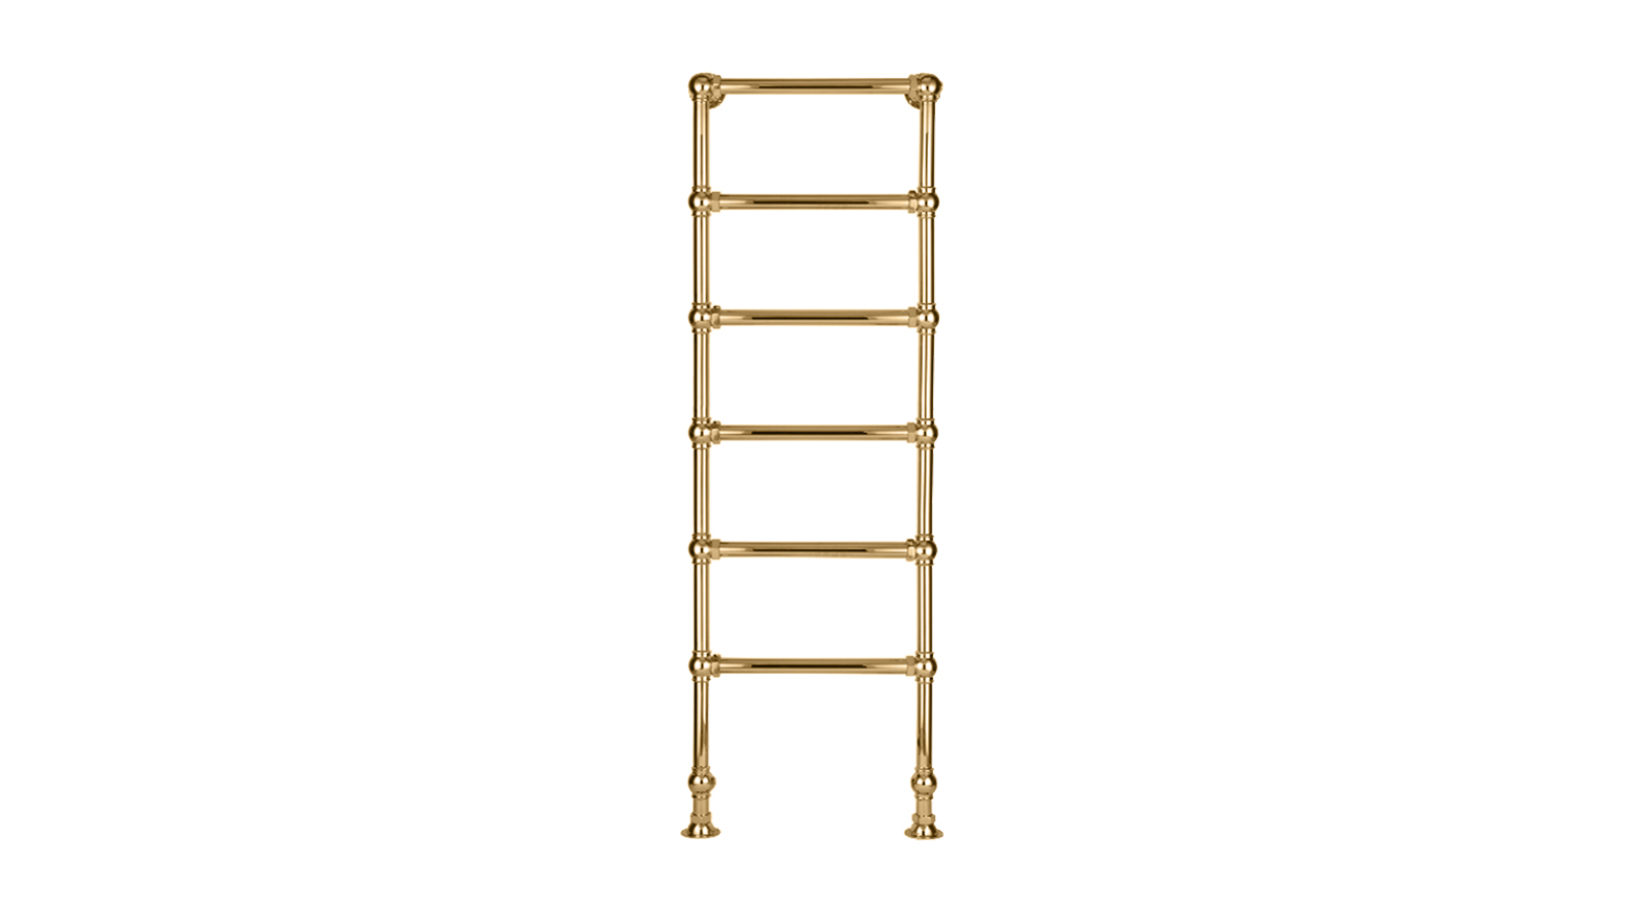 6-Bar Floor Mounted Towel Rail